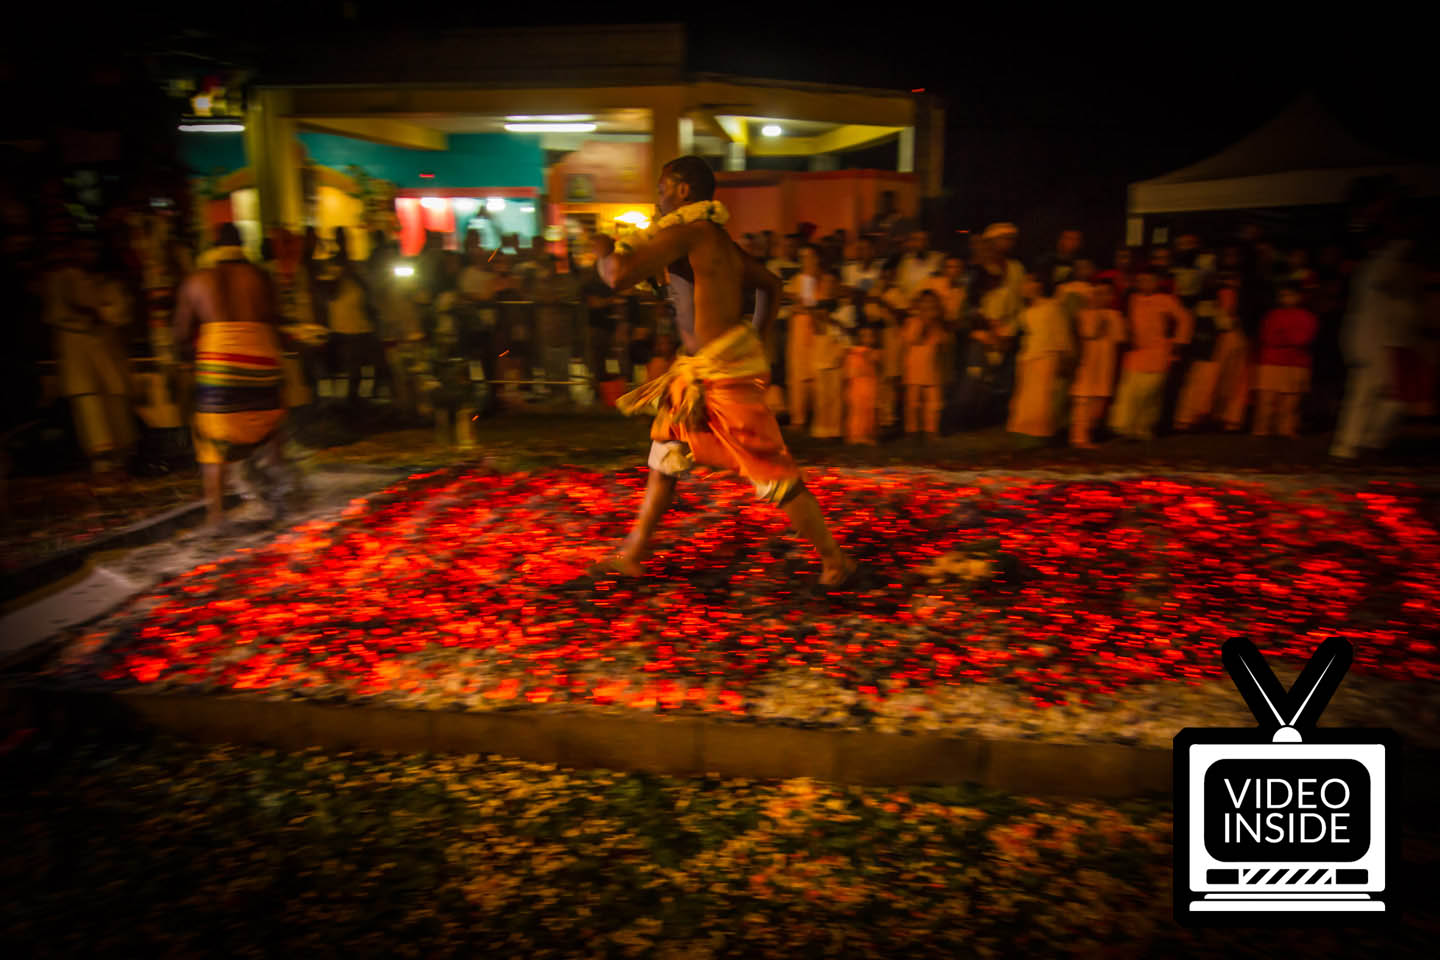 Tamil priest firewalking at Marche sur le feu firewalk La Reunion